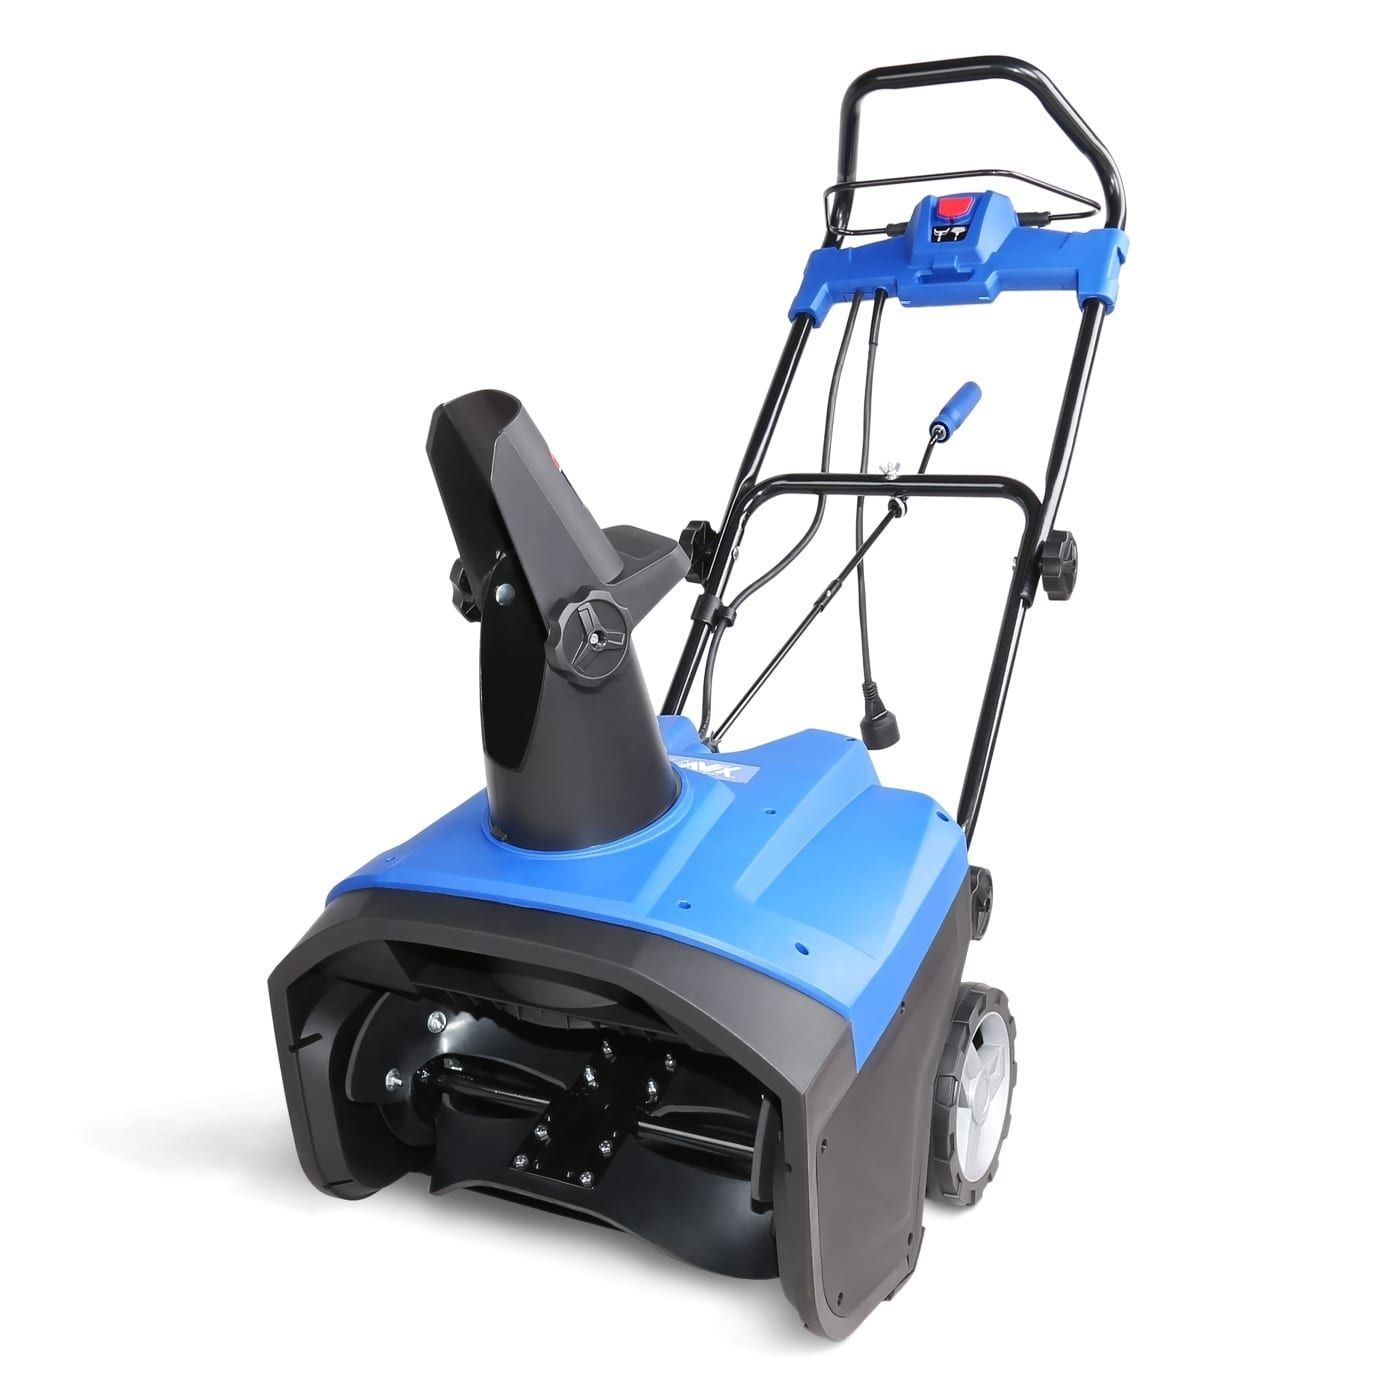 Aavix AGT3420 20 Inch Electric Snow Blower Plastic